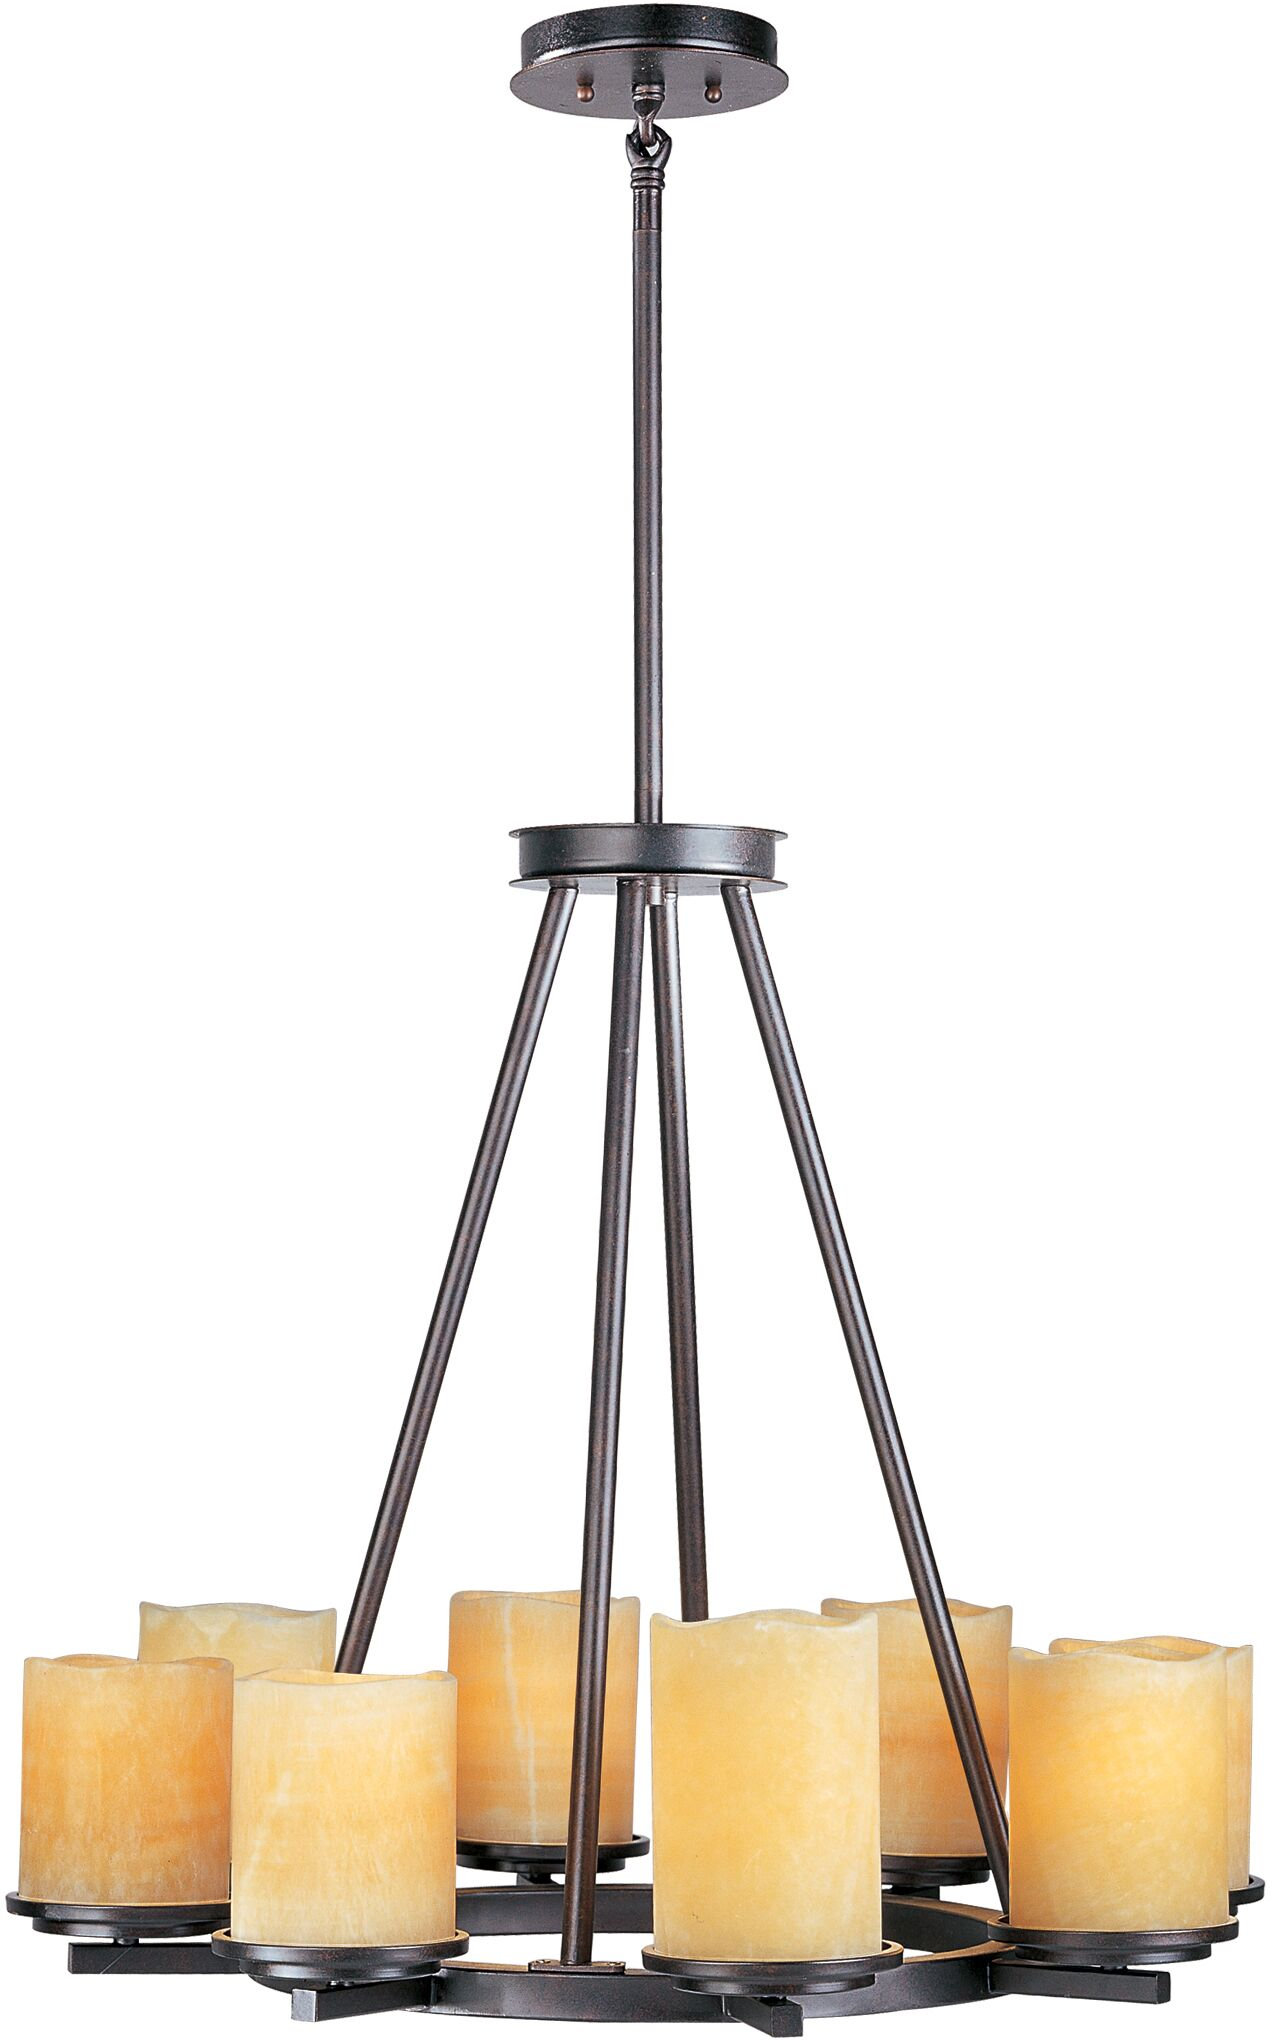 Carovilli 8-Light Shaded Chandelier